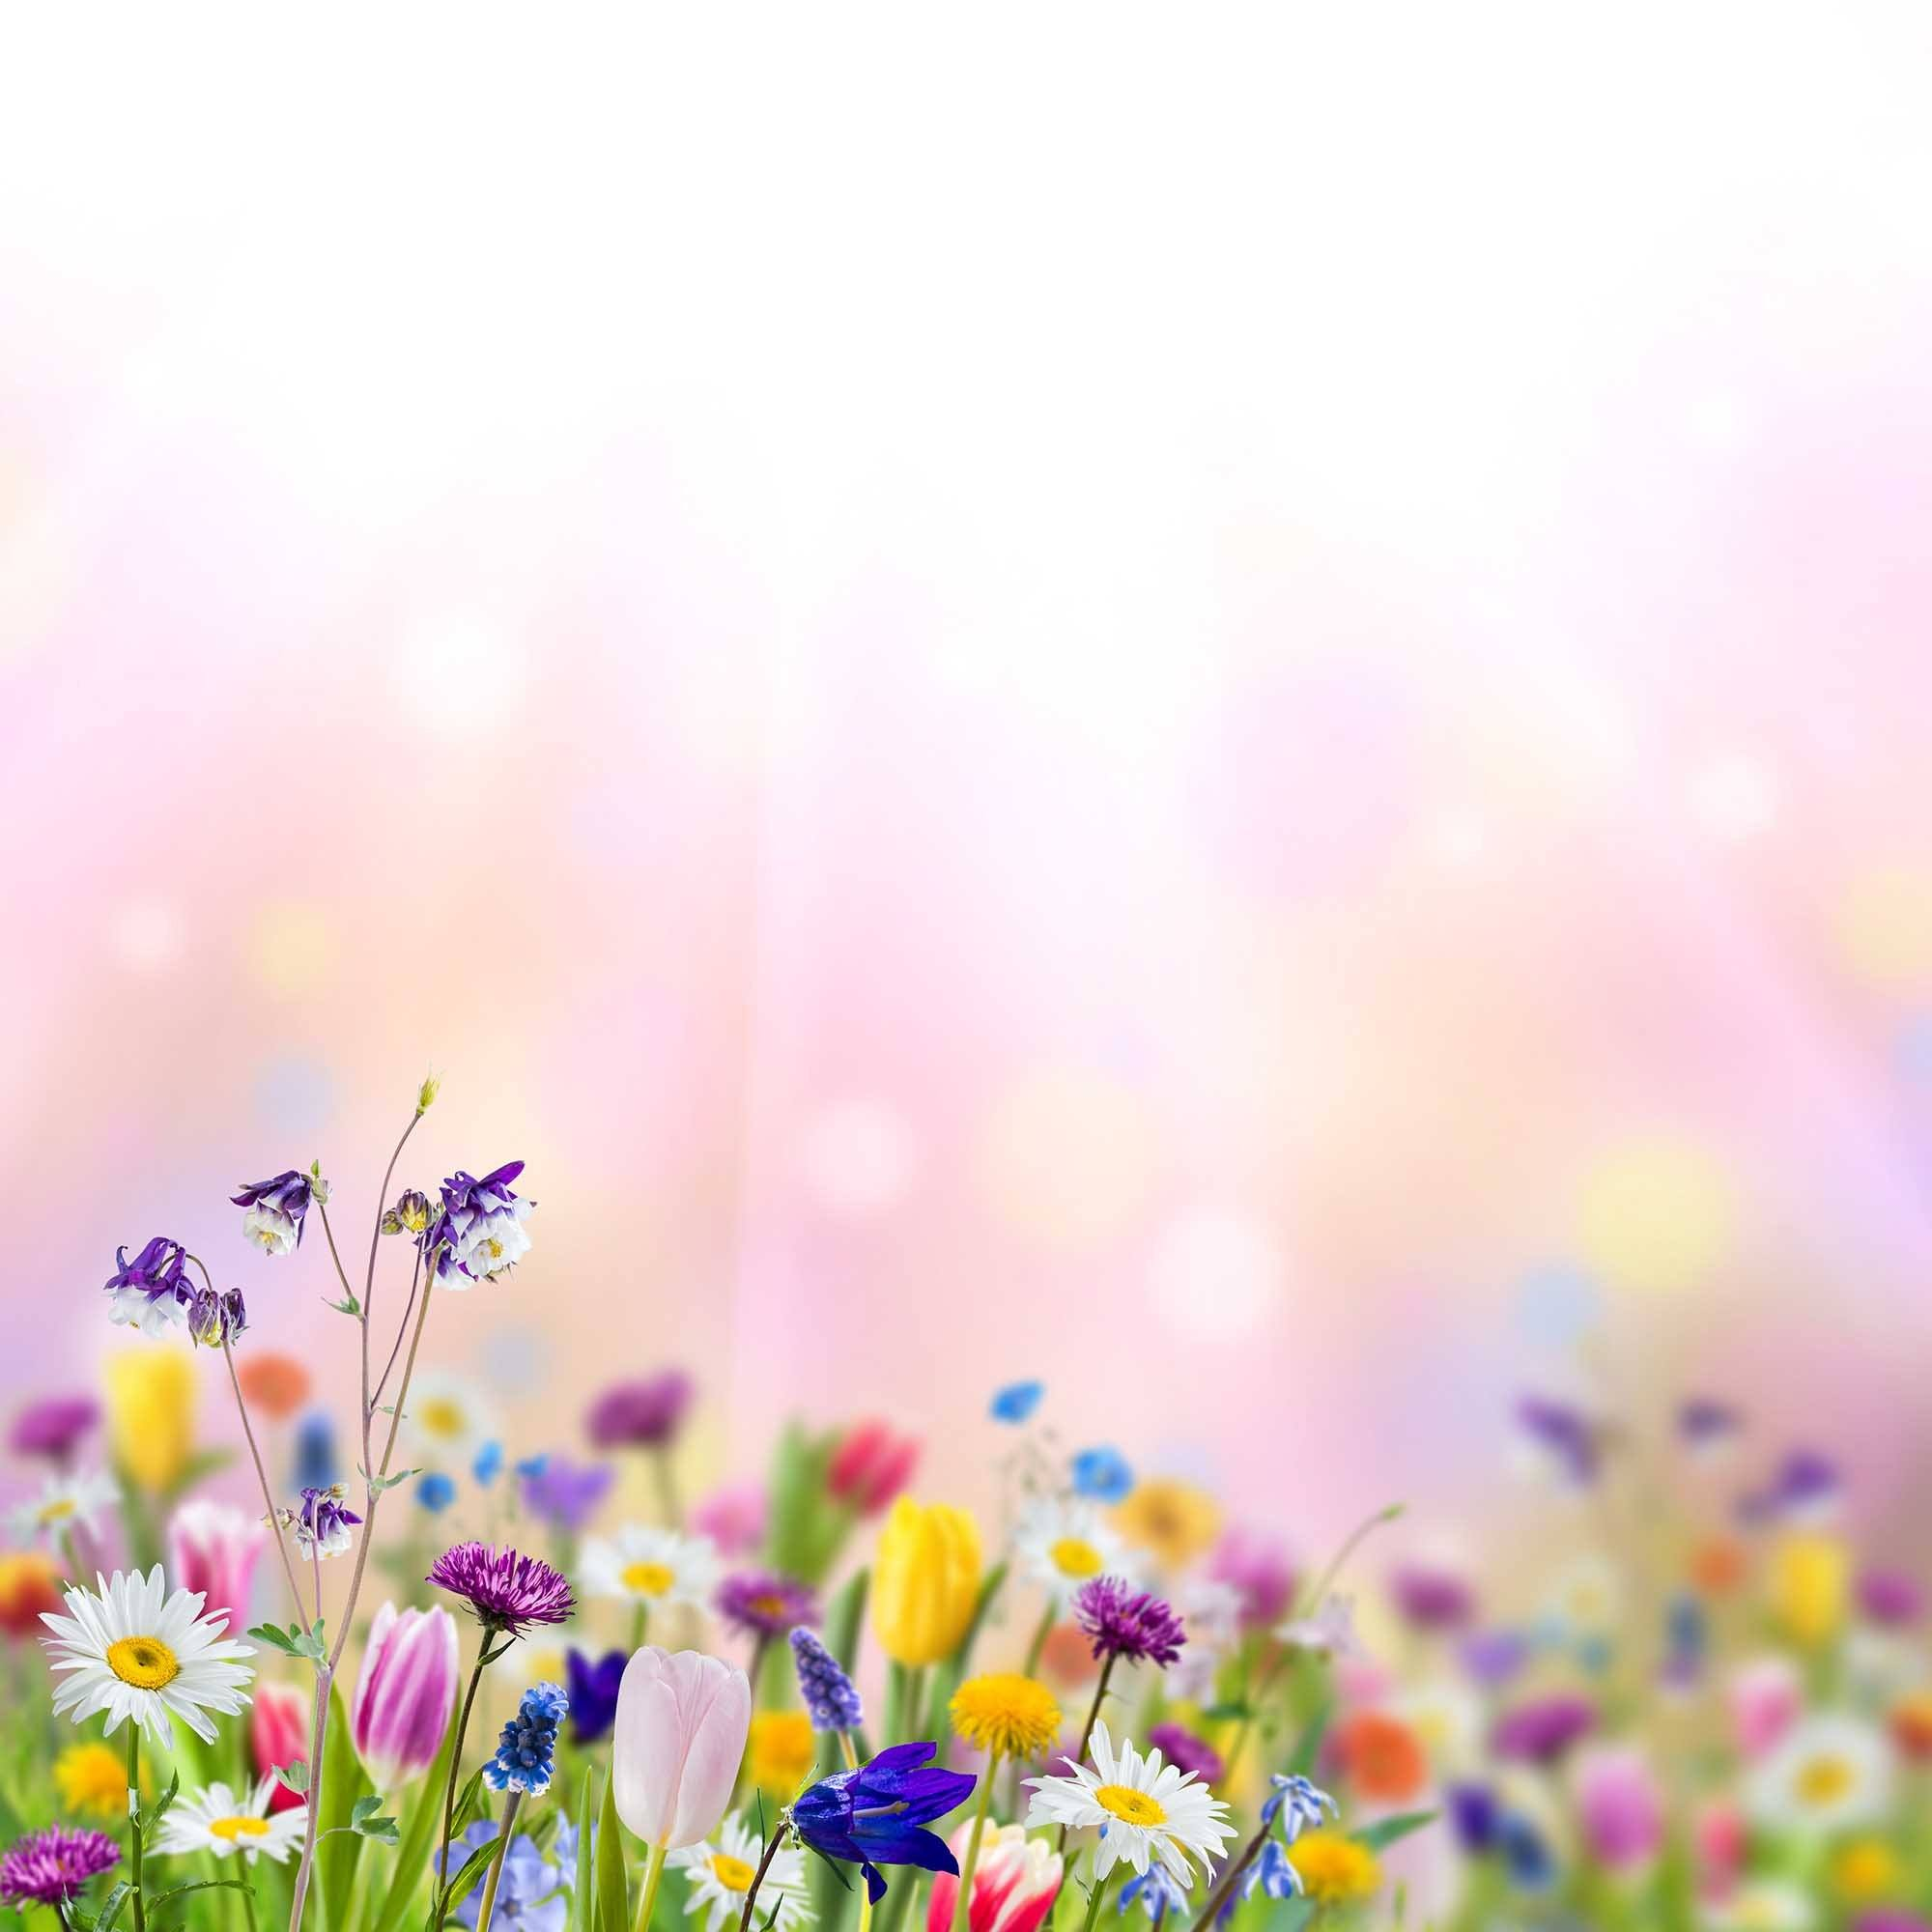 bokeh sunshine wildflowers with pink background for baby backdrop